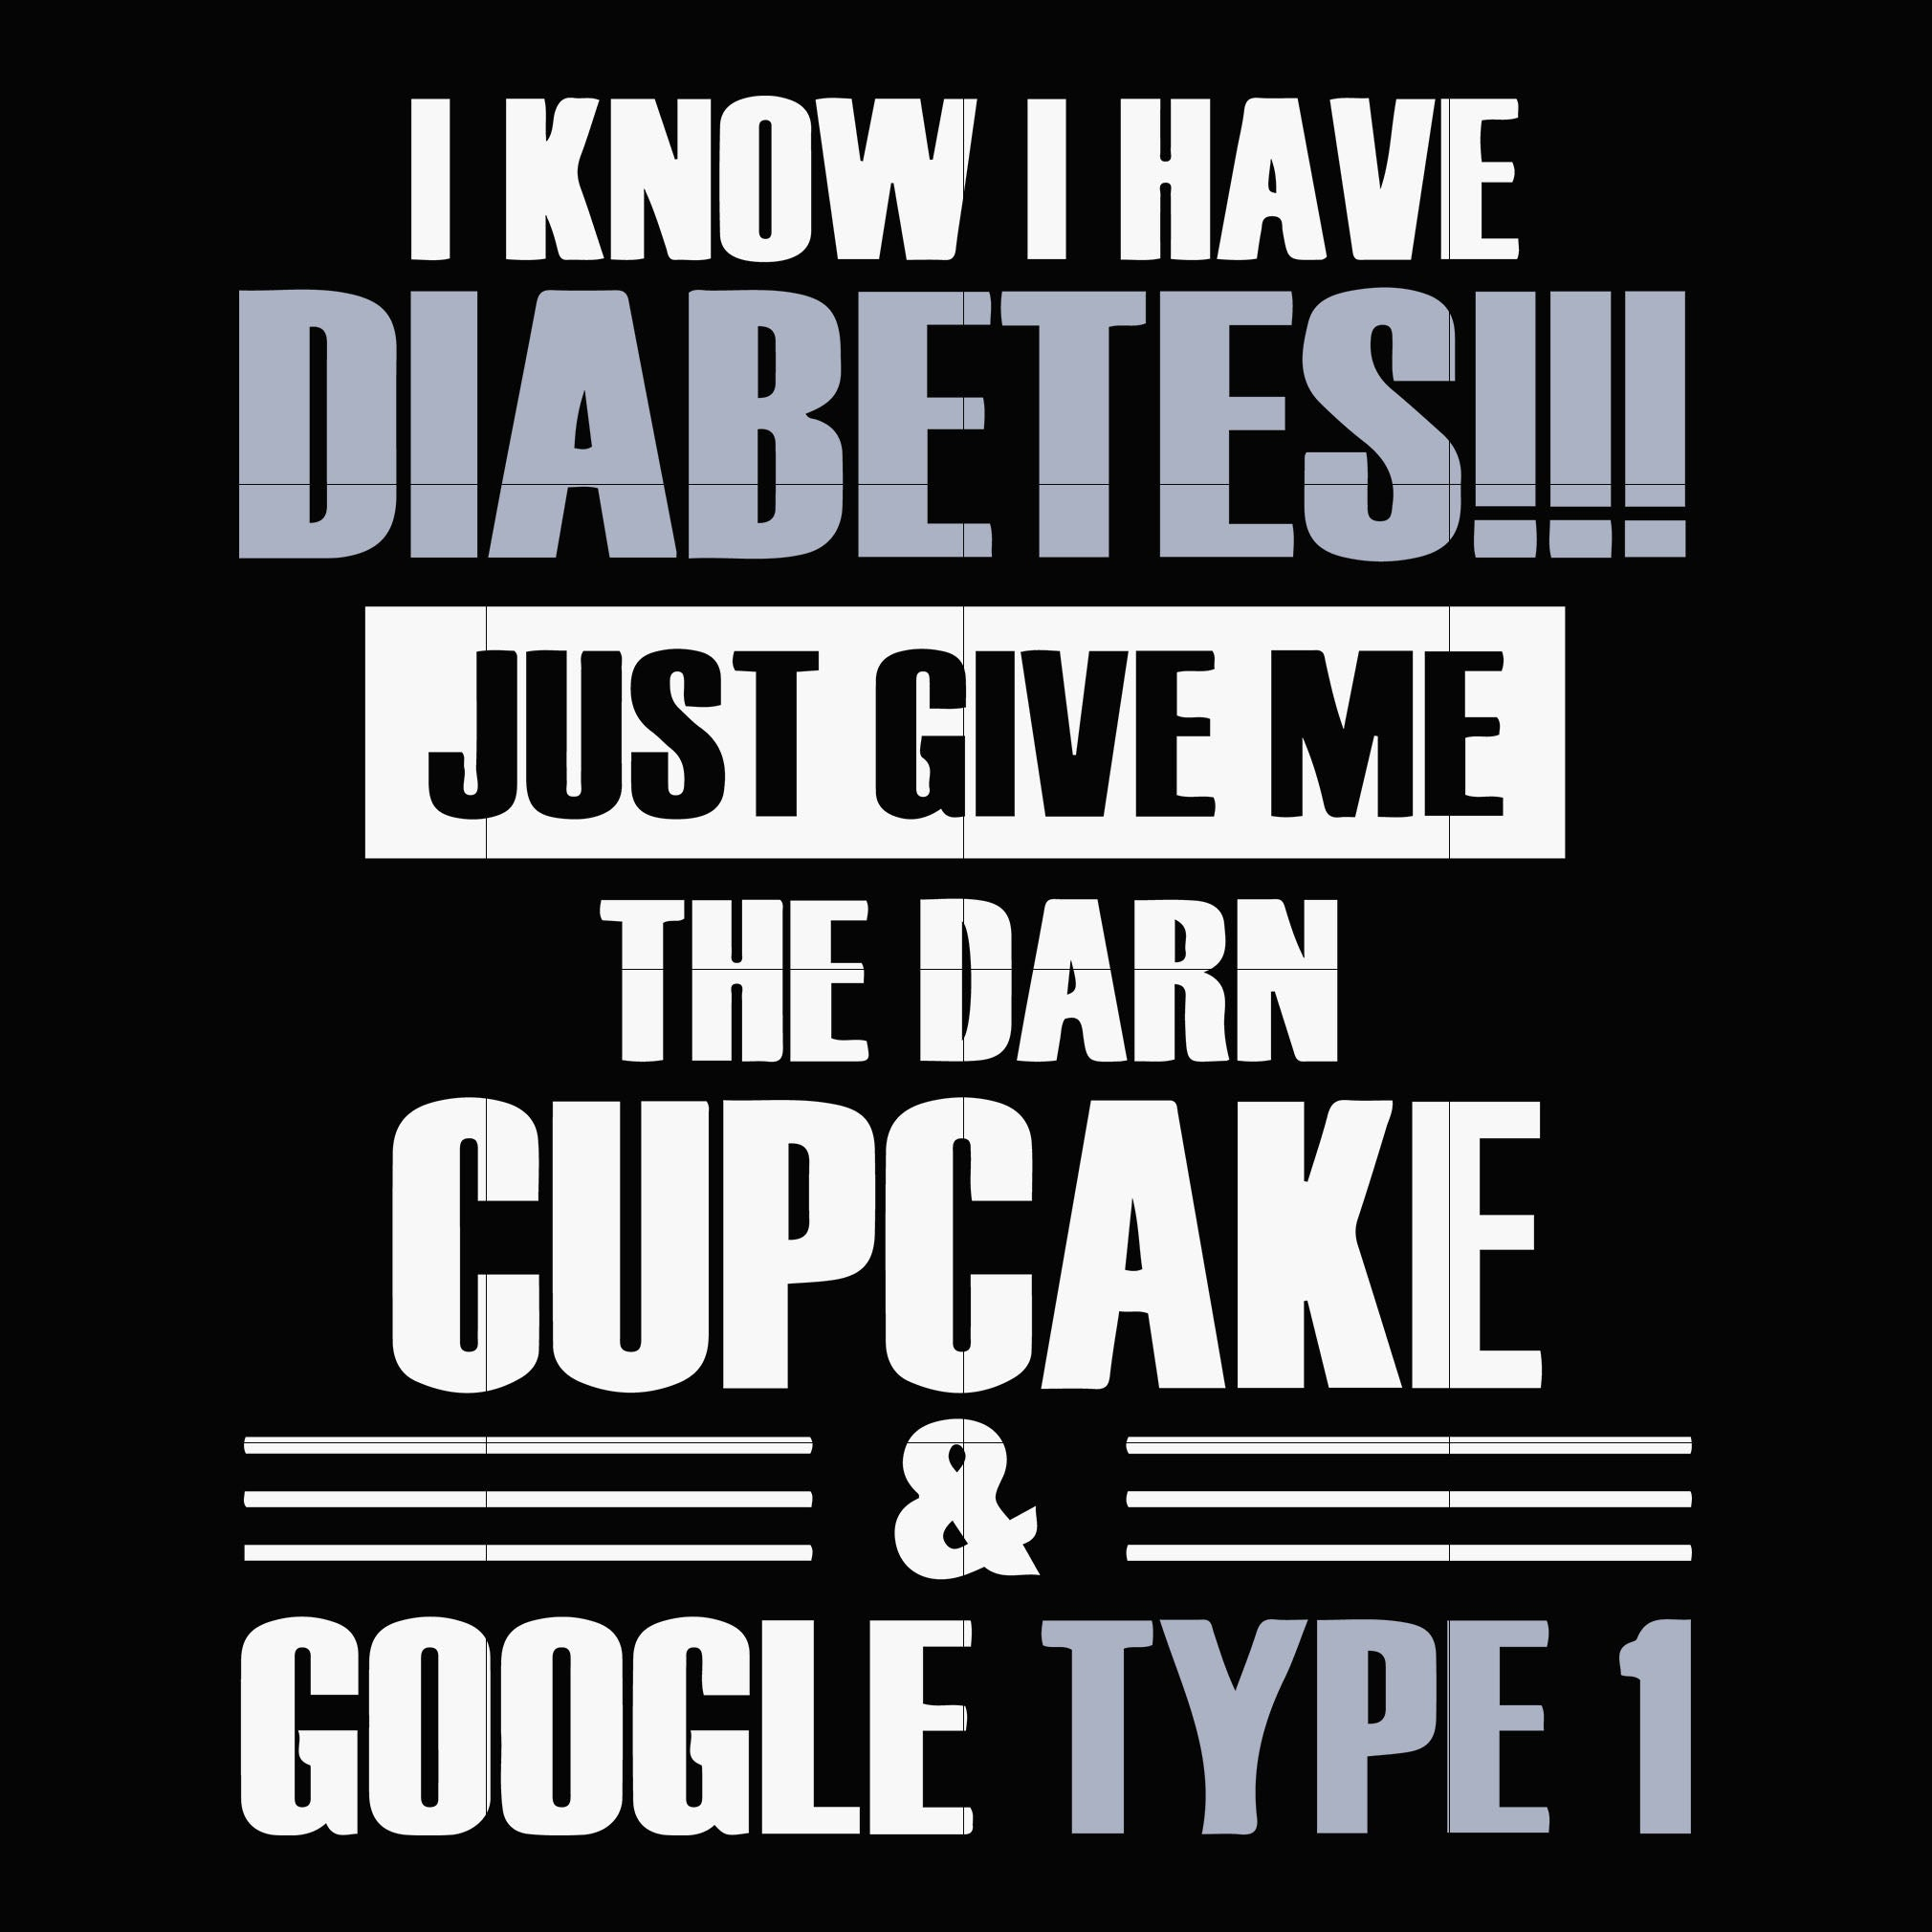 I know i have diabetes just give me the darn cupcake and google type 1 svg ,dxf,eps,png digital file